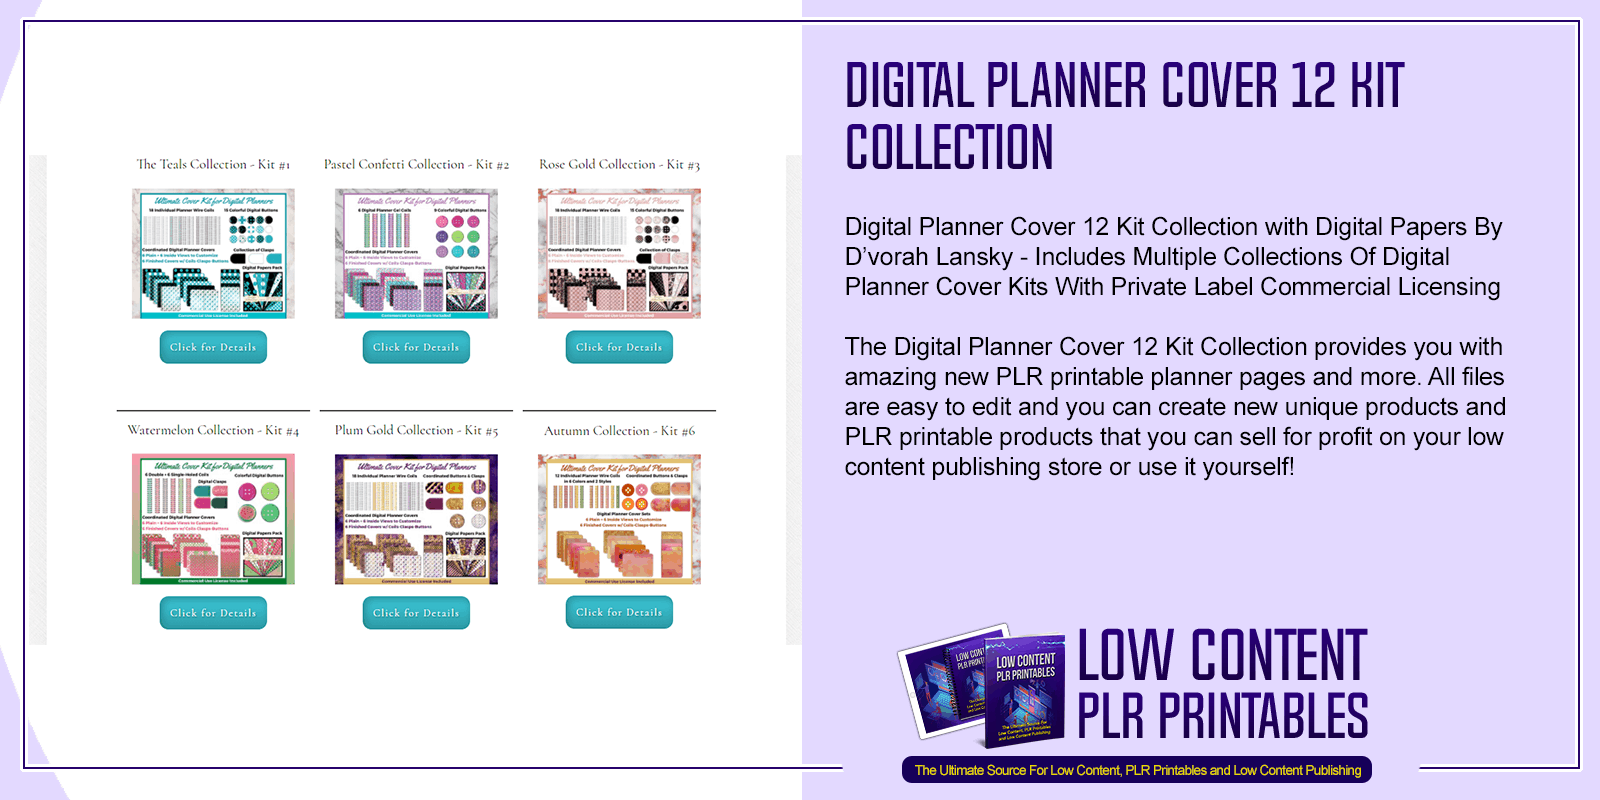 Digital Planner Cover 12 Kit Collection